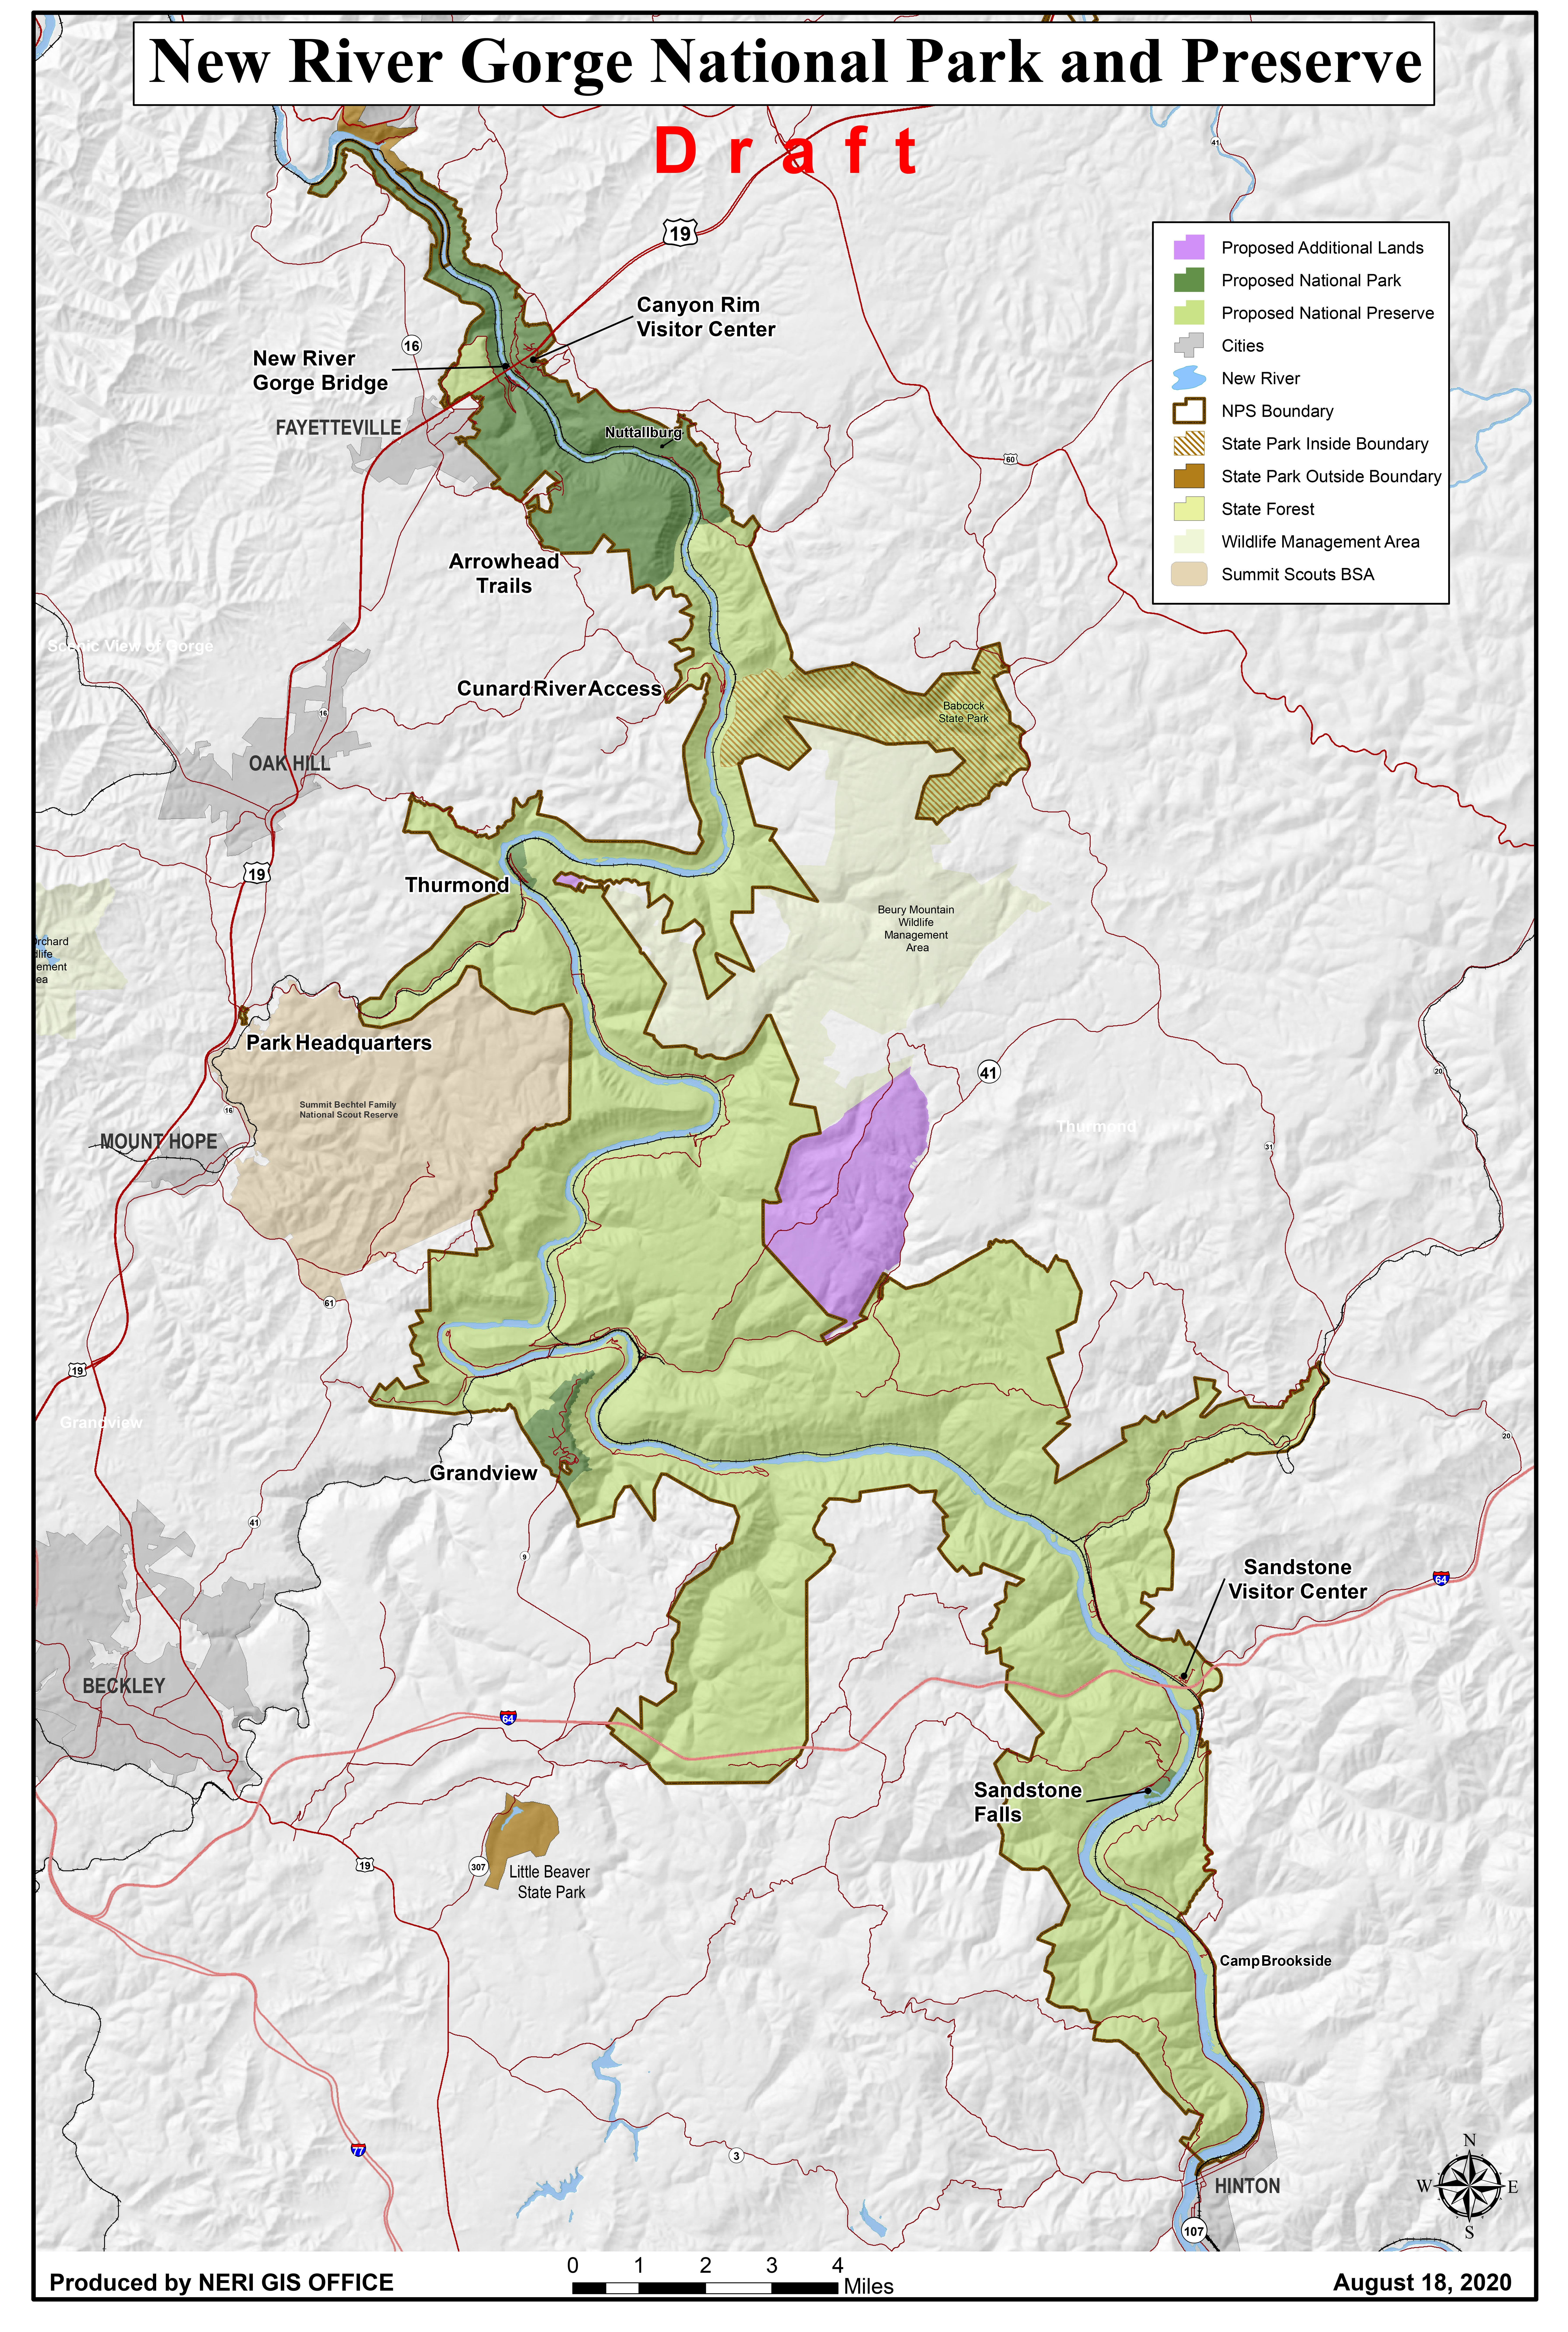 The national park and national preserve boundary map for New River Gorge in West Virginia.